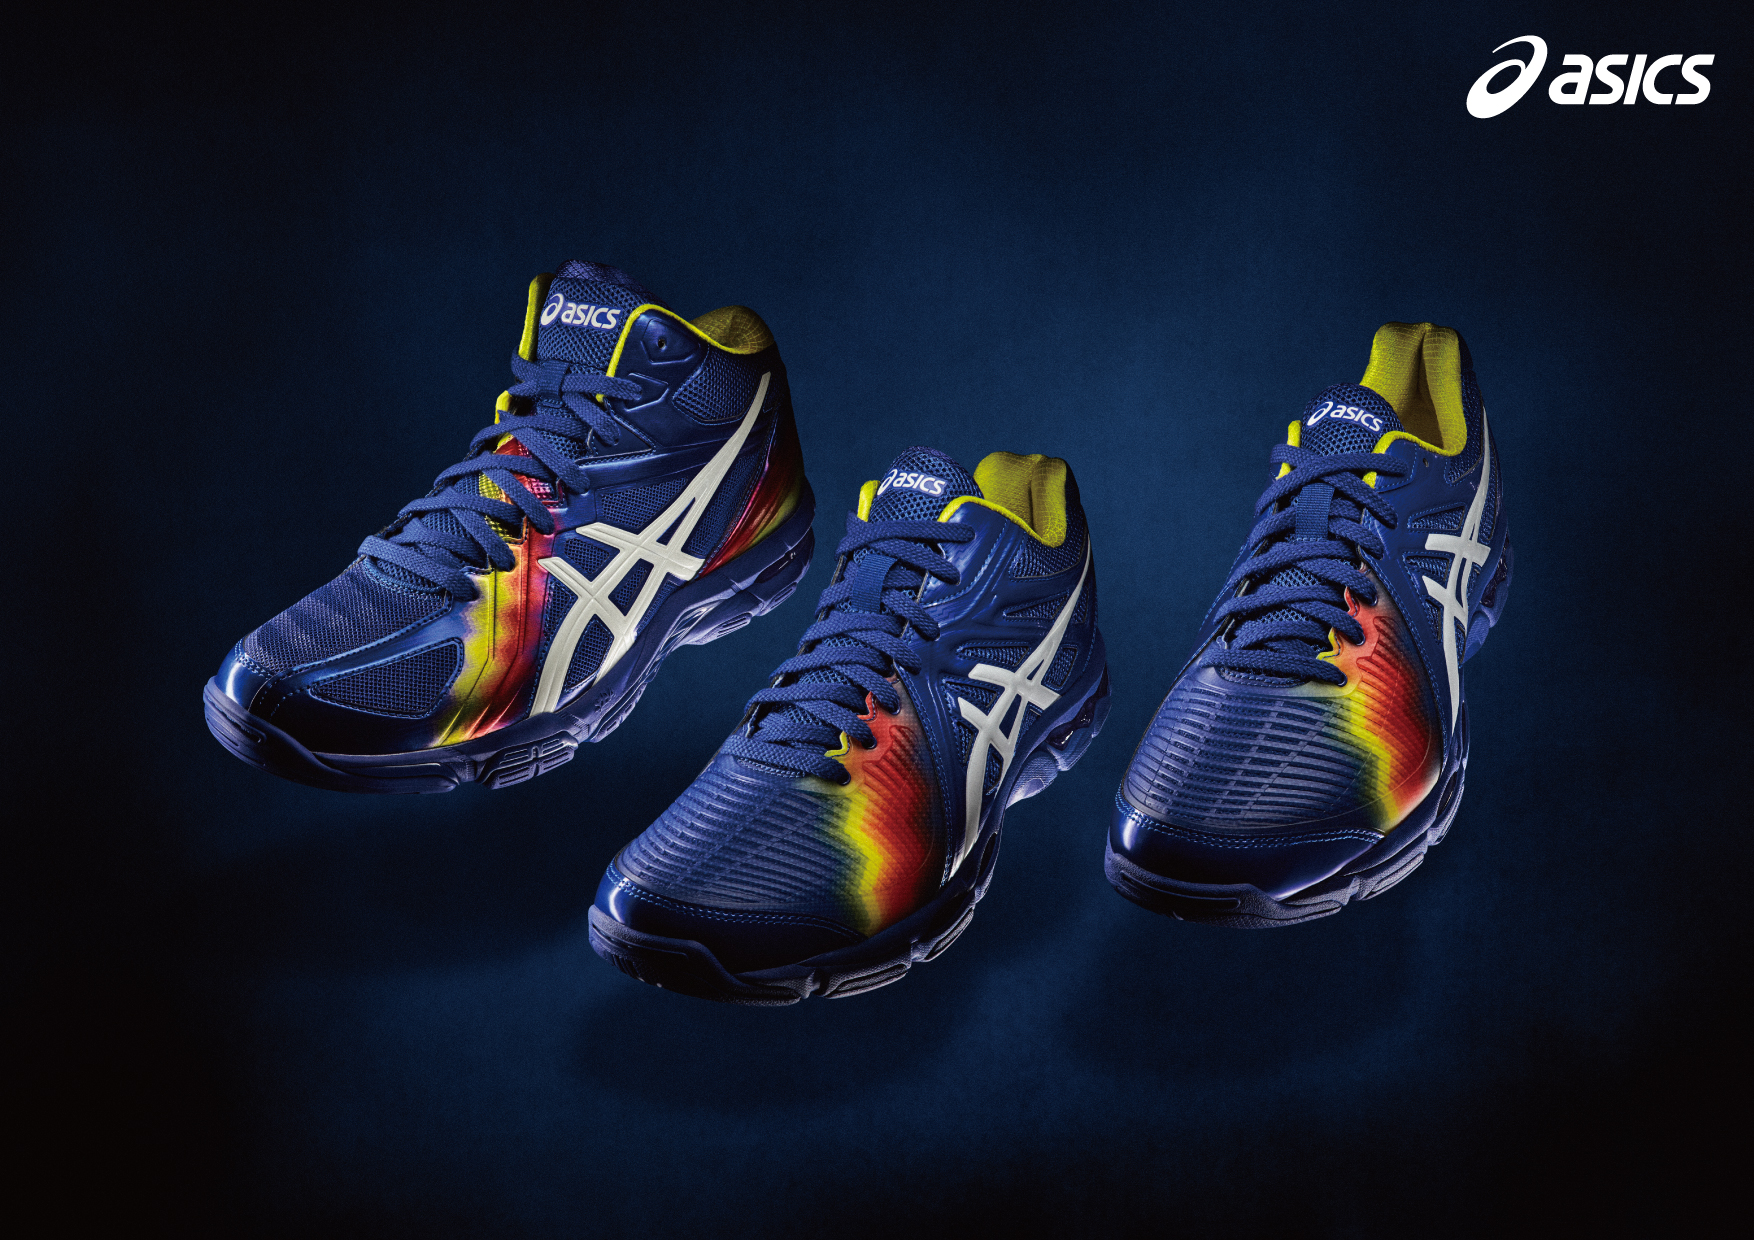 ASICS LAUNCHES 'FLAME SERIES' INSPIRED